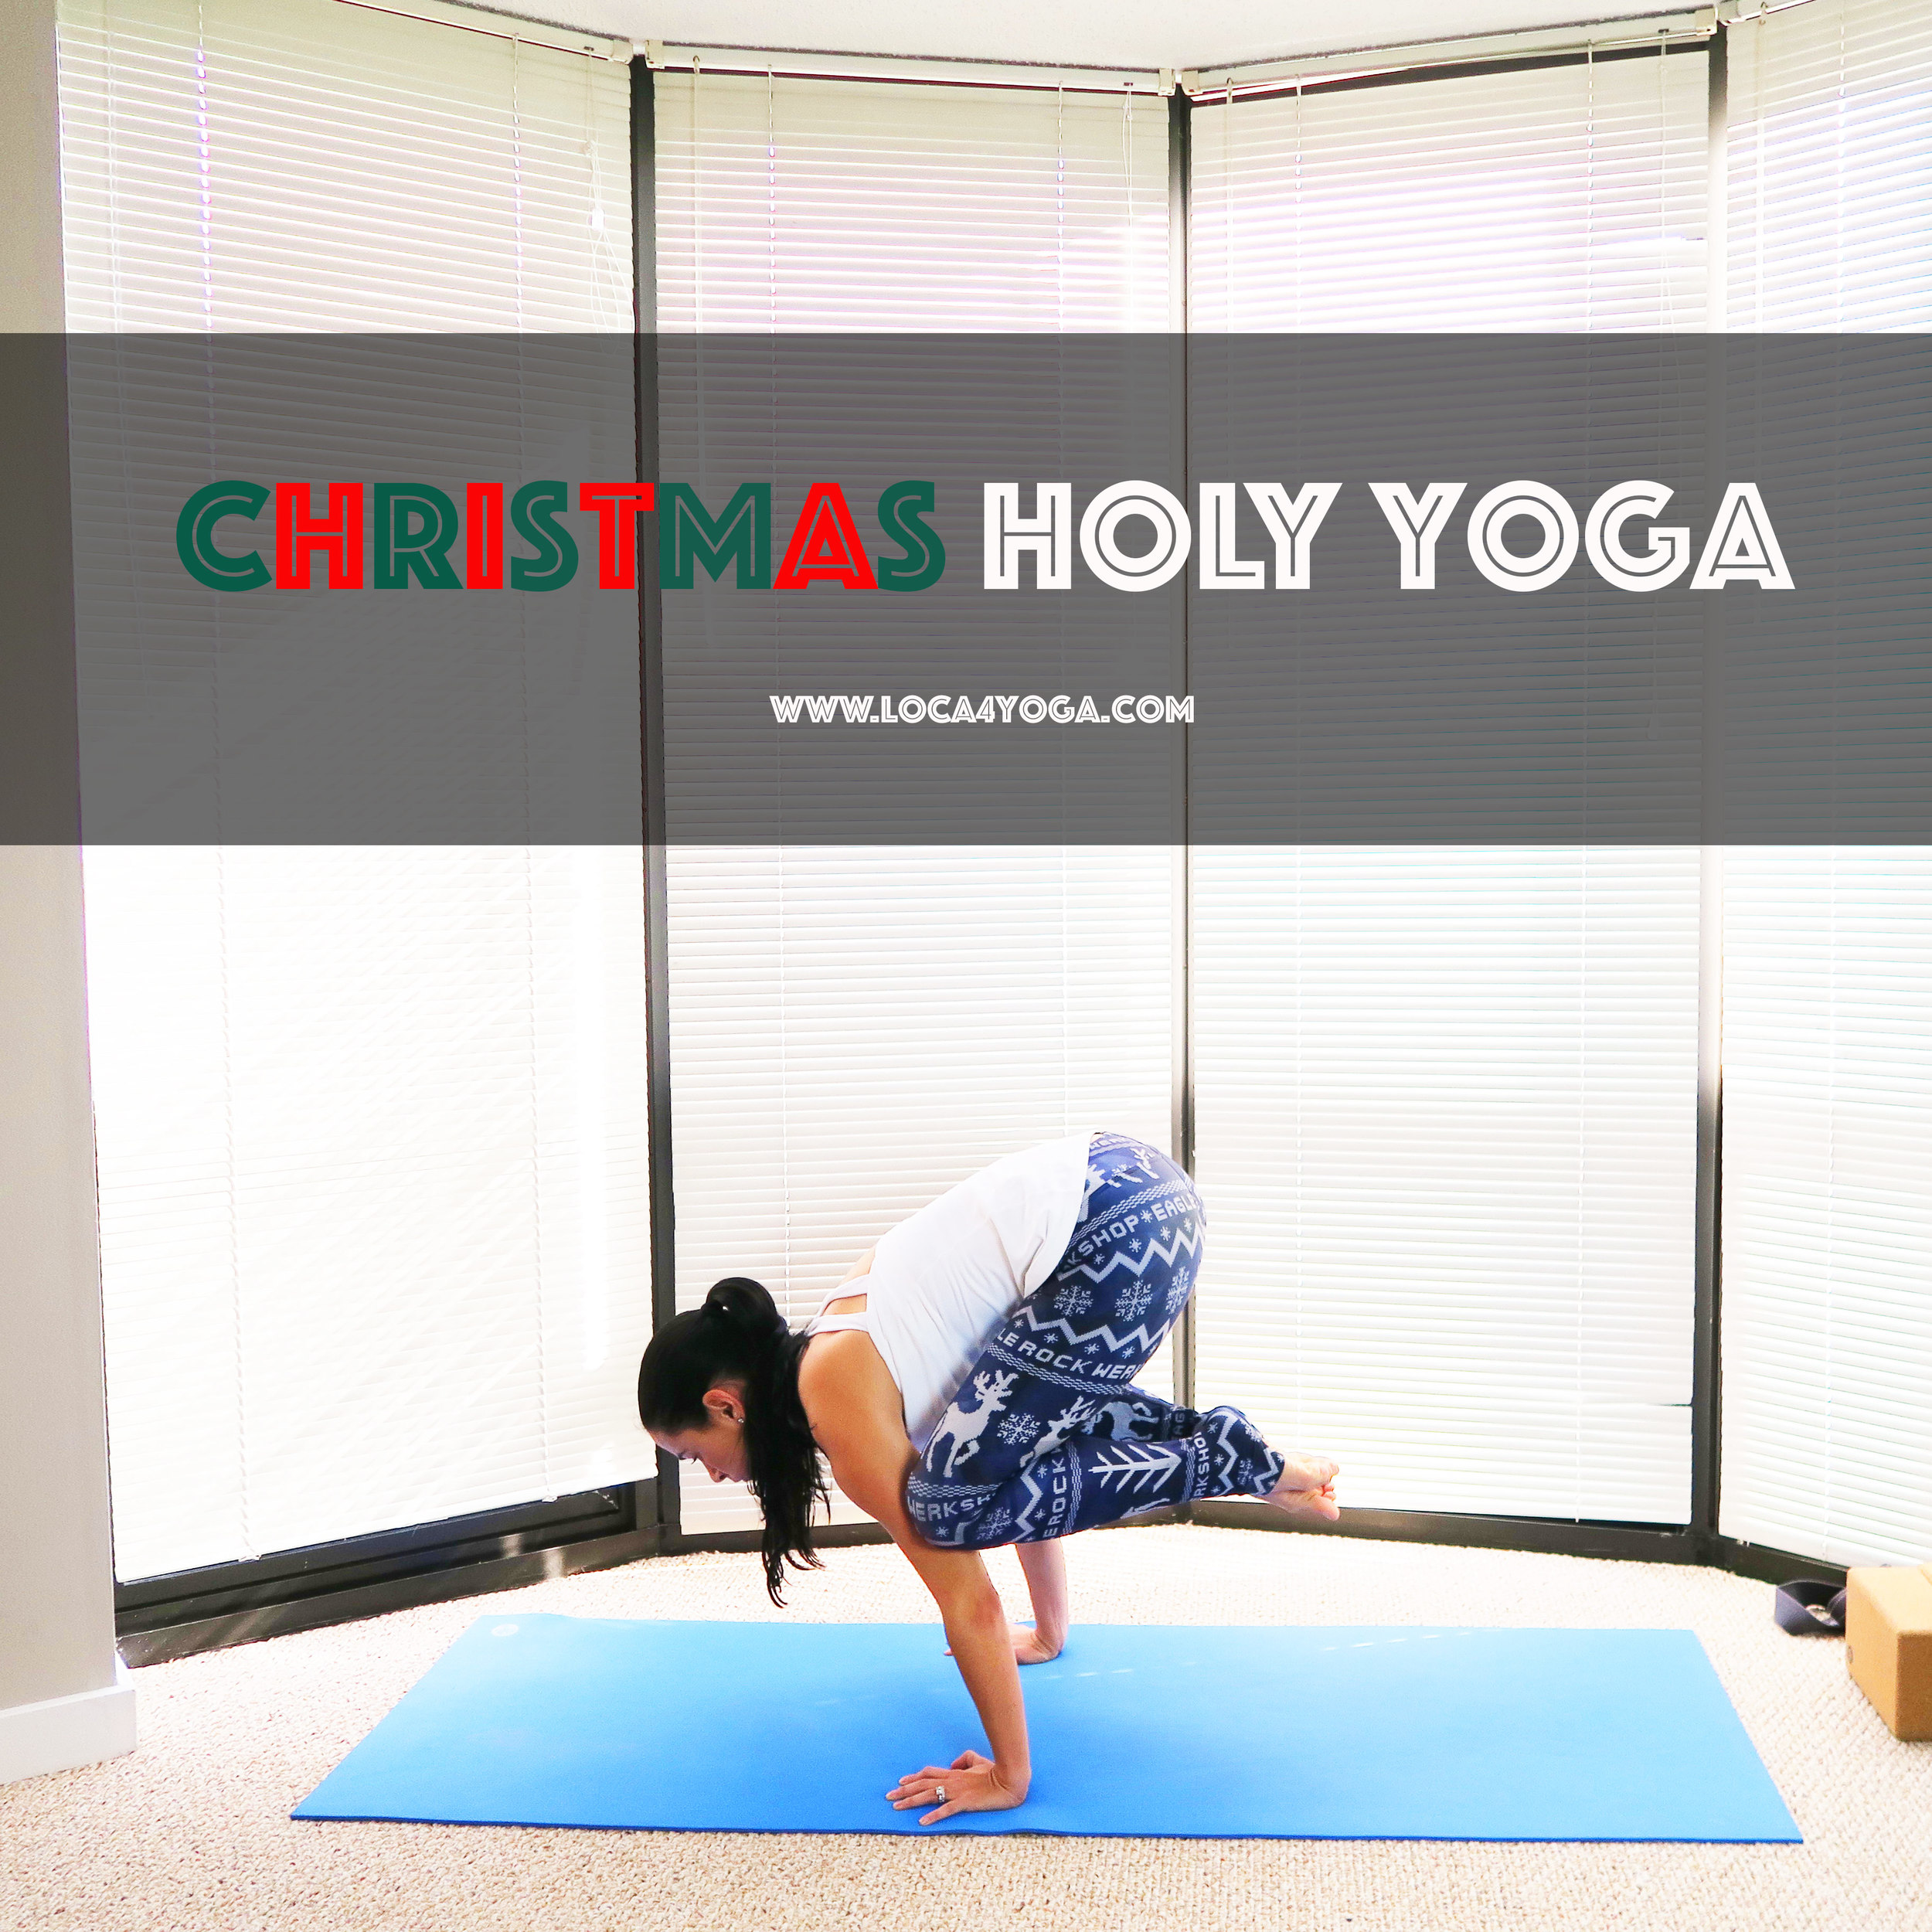 ChristmasHolyYoga.jpg